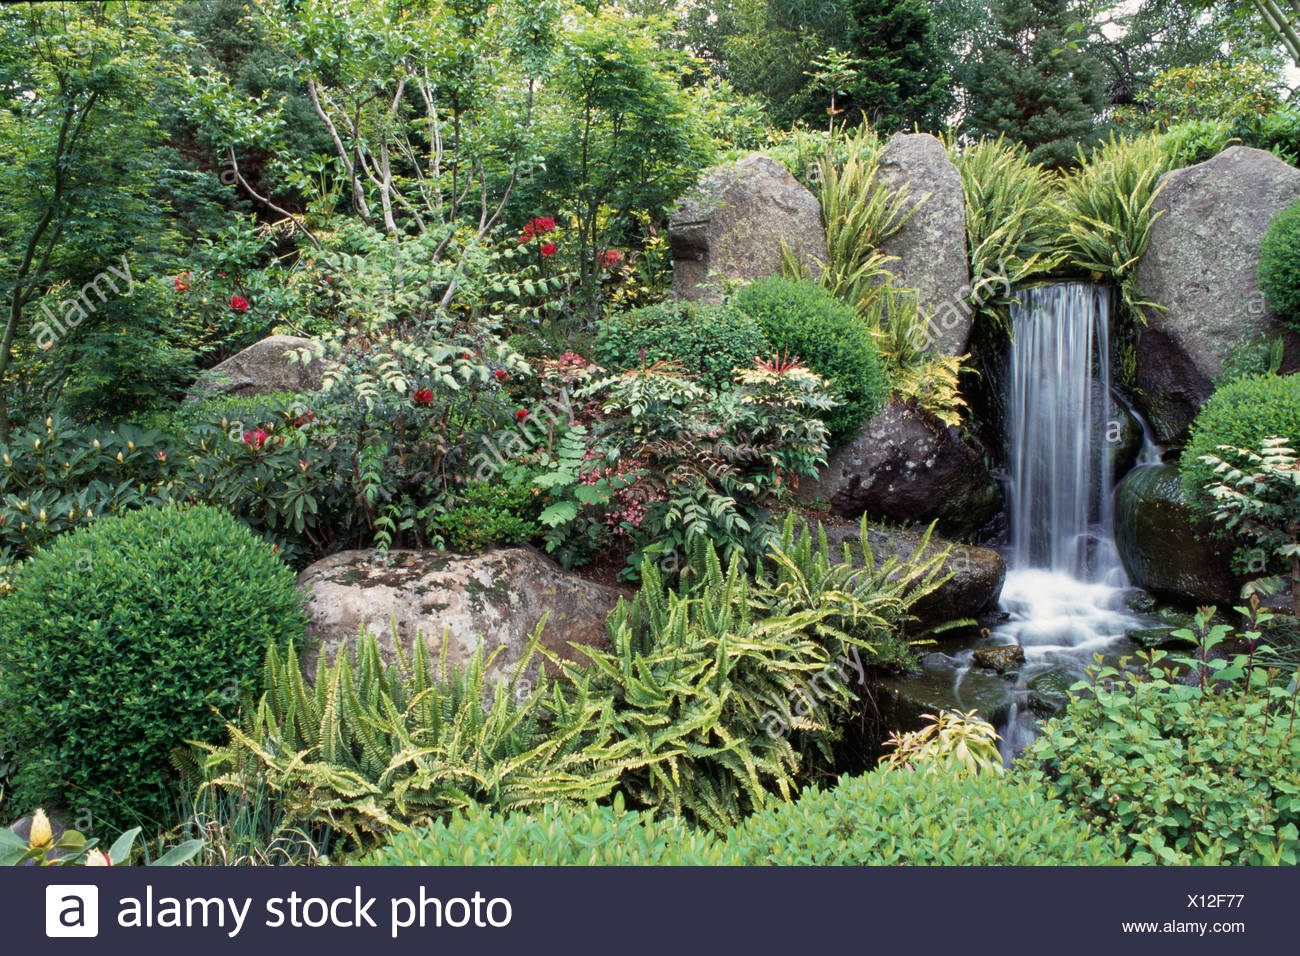 Waterfall Pool Lined With Hart S Tongue Fern And Surrounded By Evergreen  Trees And Clipped Shrubs